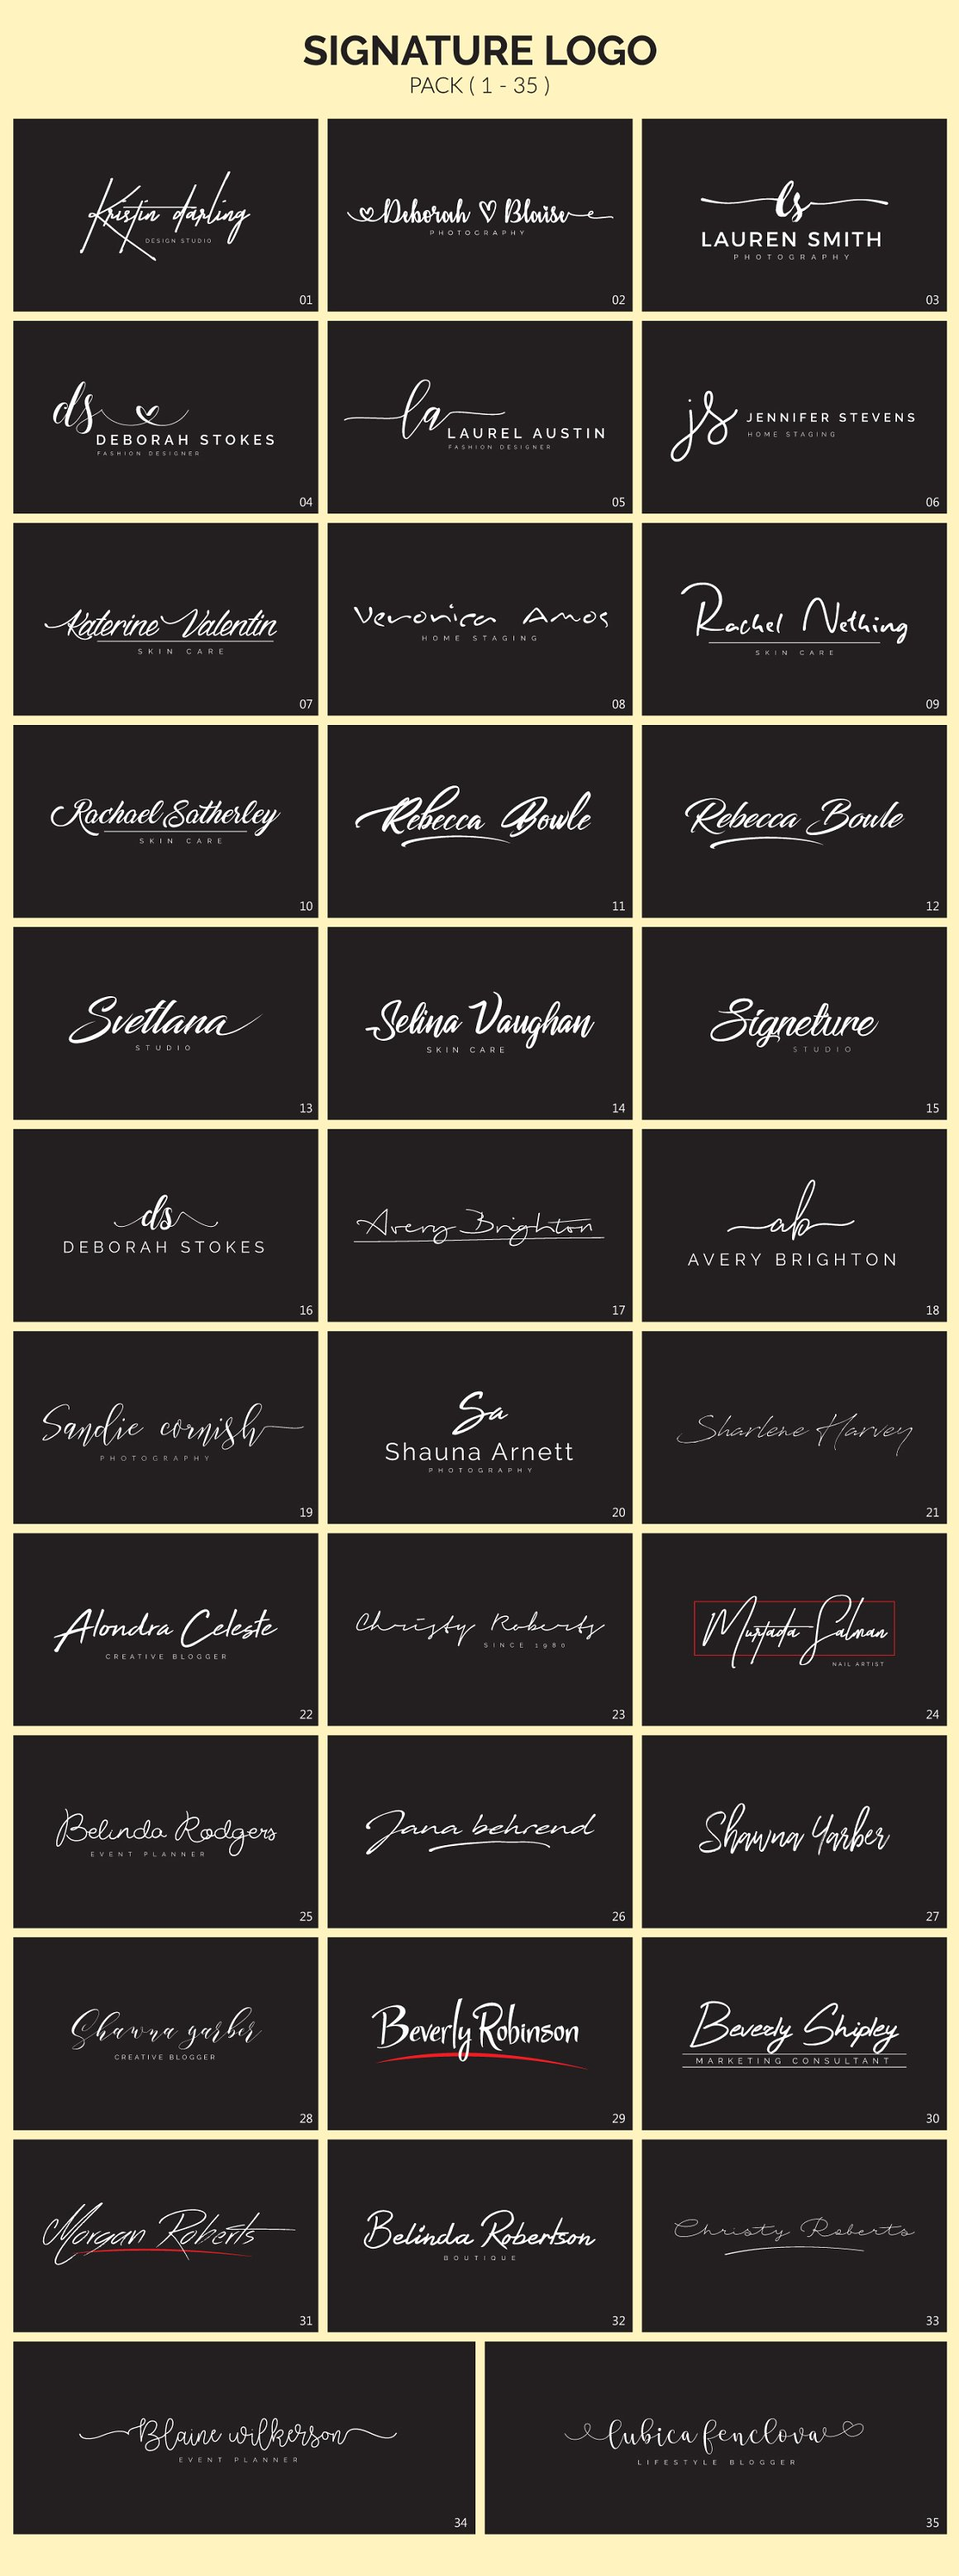 70 Signature Logo Bundle - signature logos 3